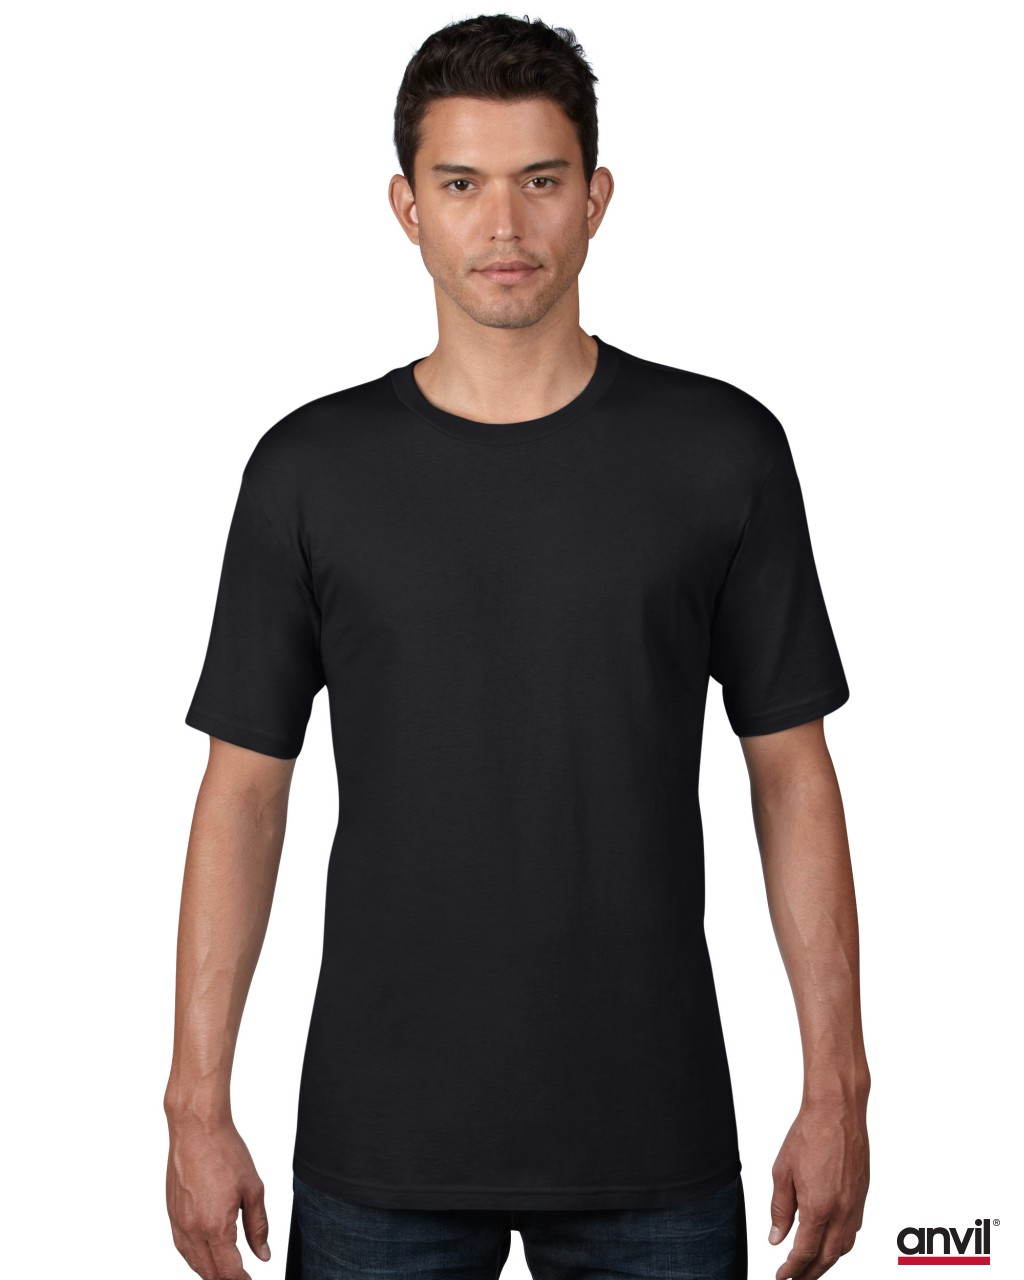 Anvil organic t shirts wholesale aucland for Where are anvil shirts made